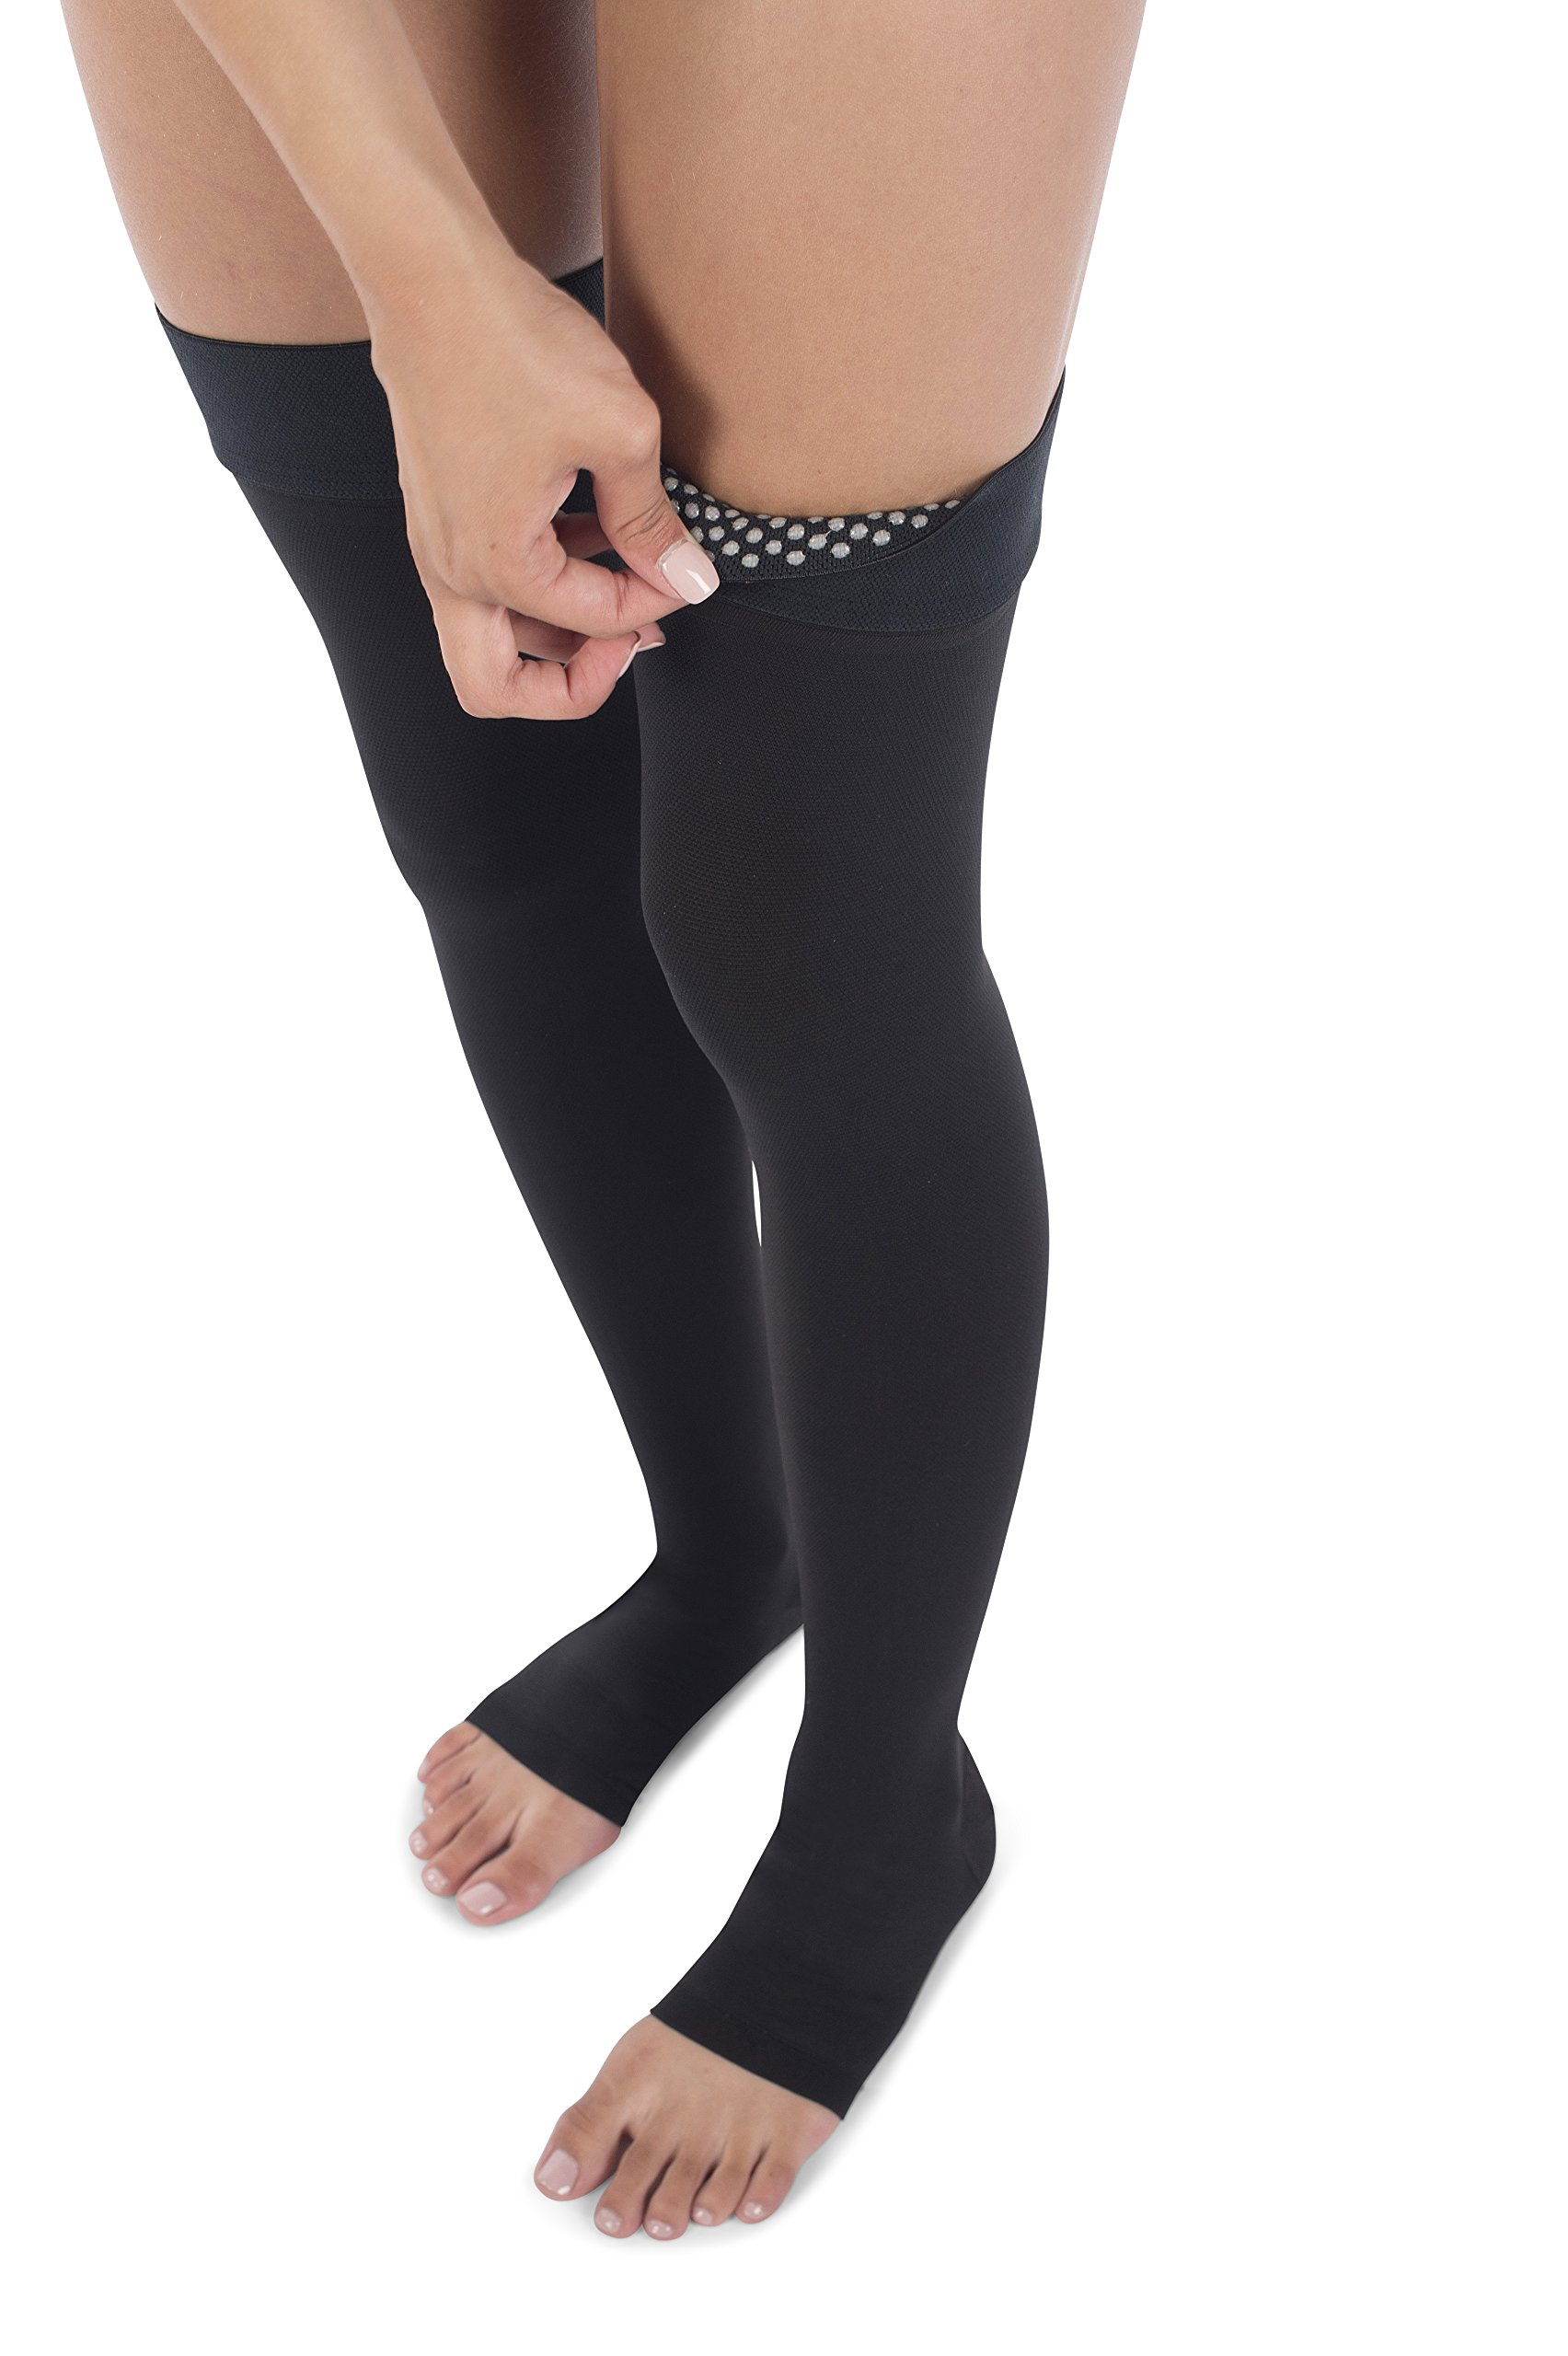 Jomi Compression Thigh High Collection, 20-30mmHg Surgical Weight Open Toe 241 (XX-Large, Black) by JOMI COMPRESSION (Image #7)